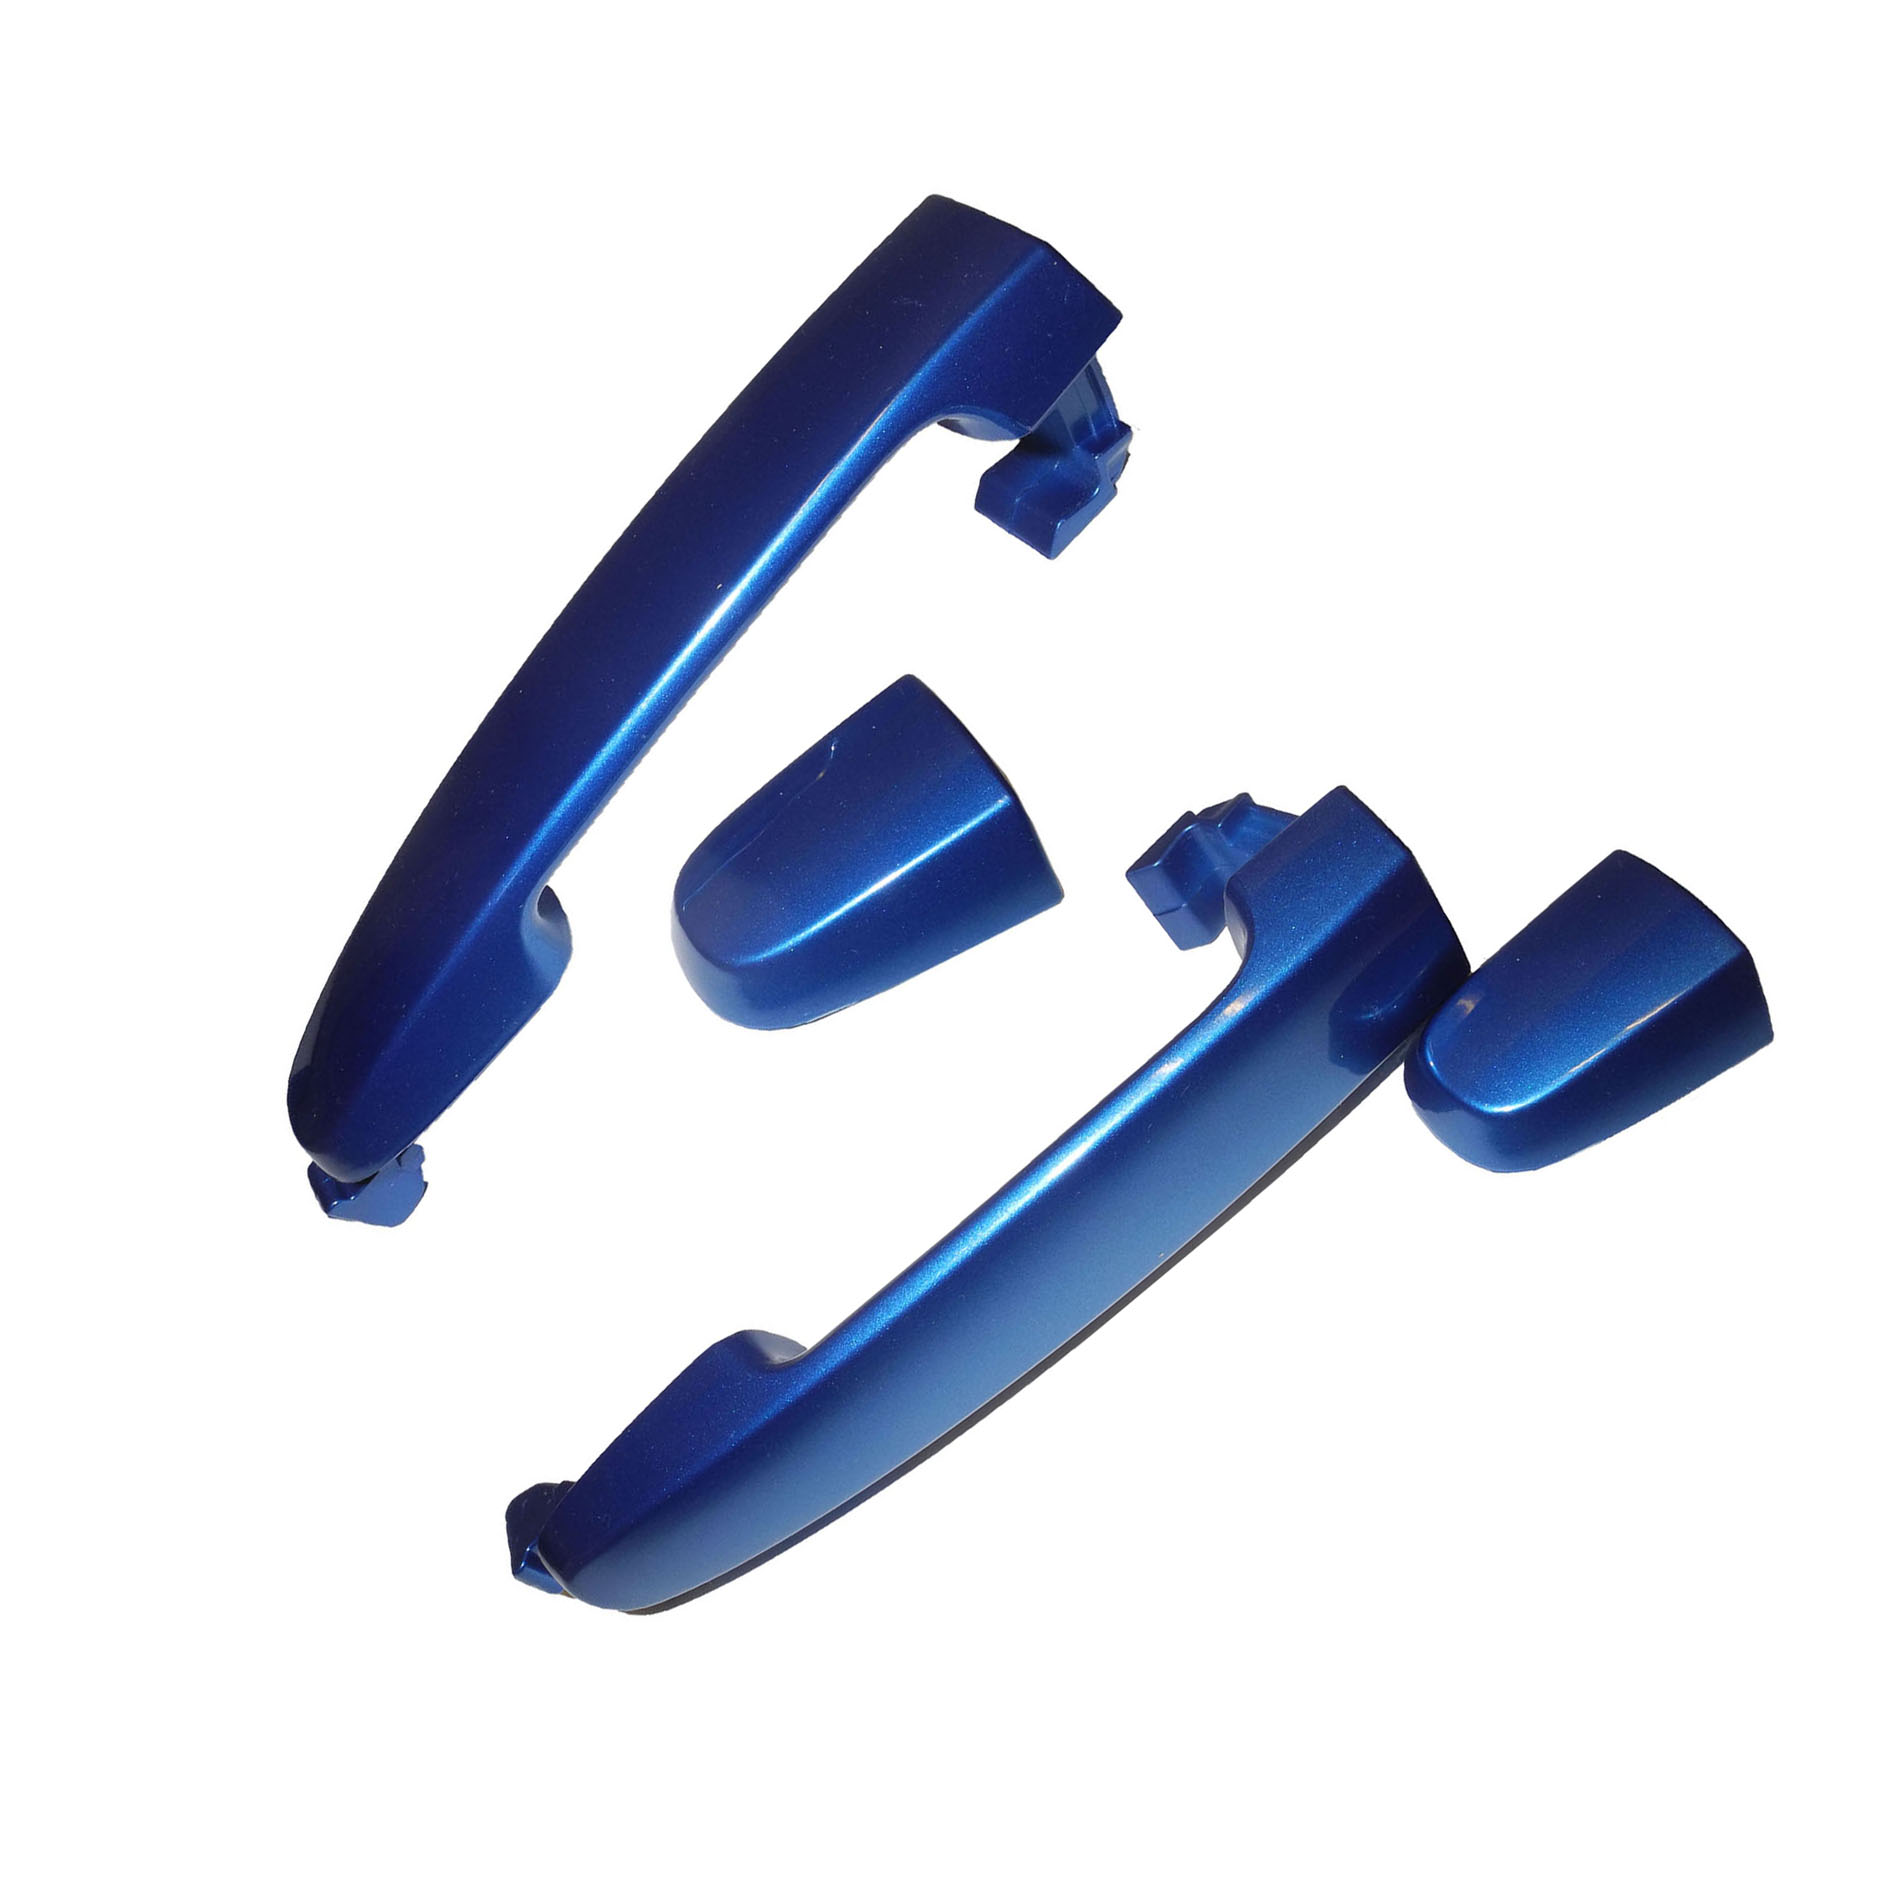 For Rear 02-06 TOYOTA Camry Blue Mica 8Q1 W/O Keyhole DS533 Outer Door Handle 02 03 04 05 06